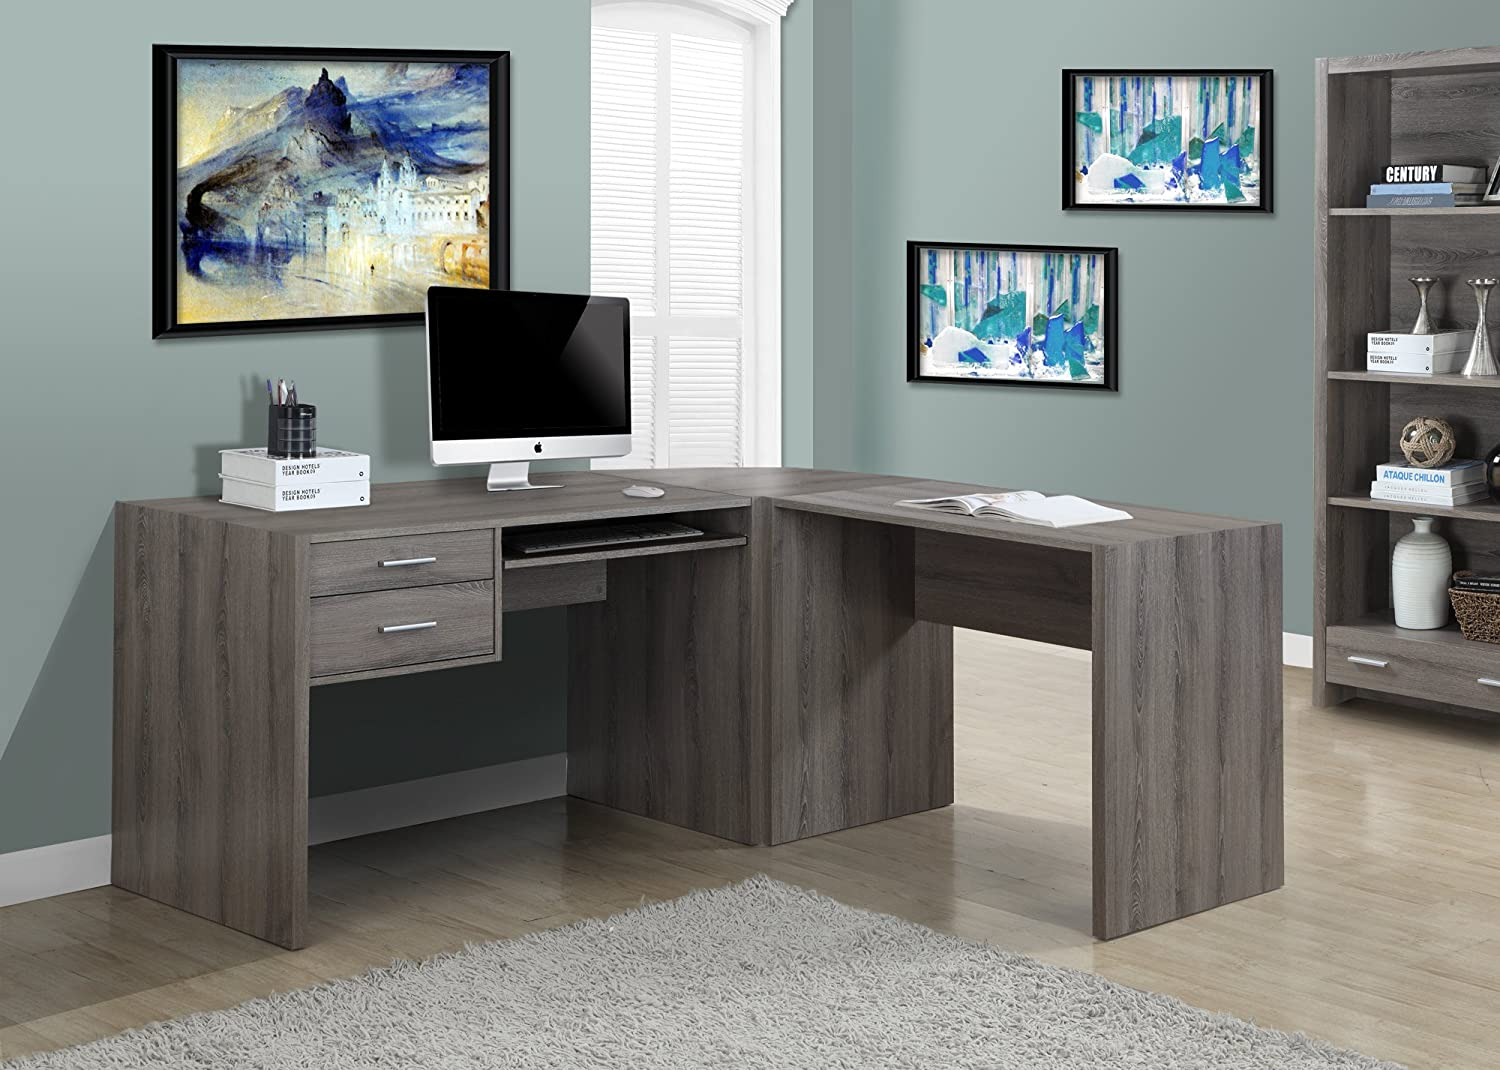 Dark Taupe Reclaimed-Look Corner Wedge Only ( 7090/7091 ) taupe